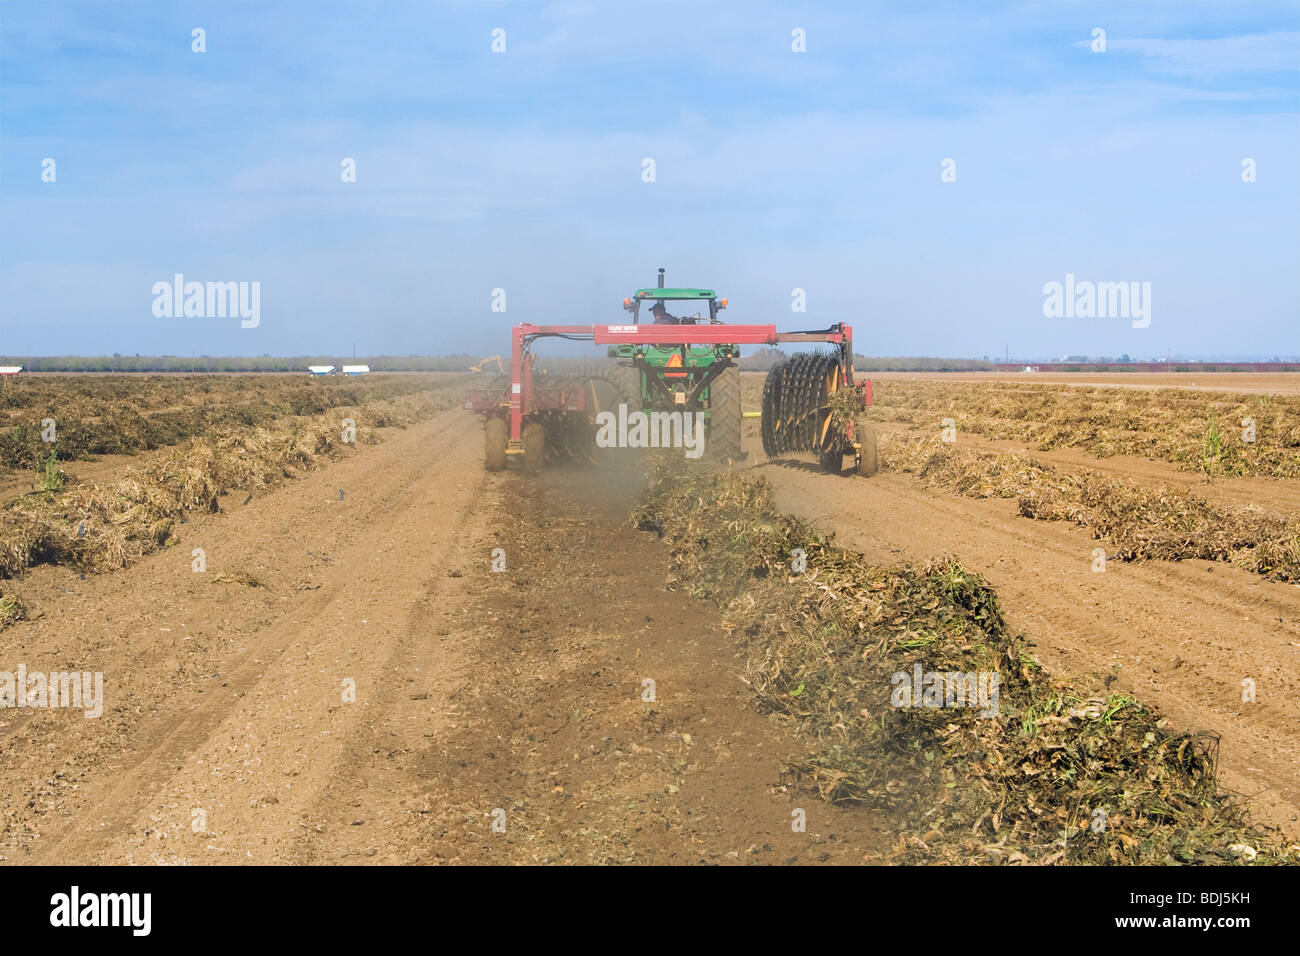 A tractor with a windrower turns rows of cut dry beans to facilitate even drying prior to harvest / Arbuckle, California, - Stock Image